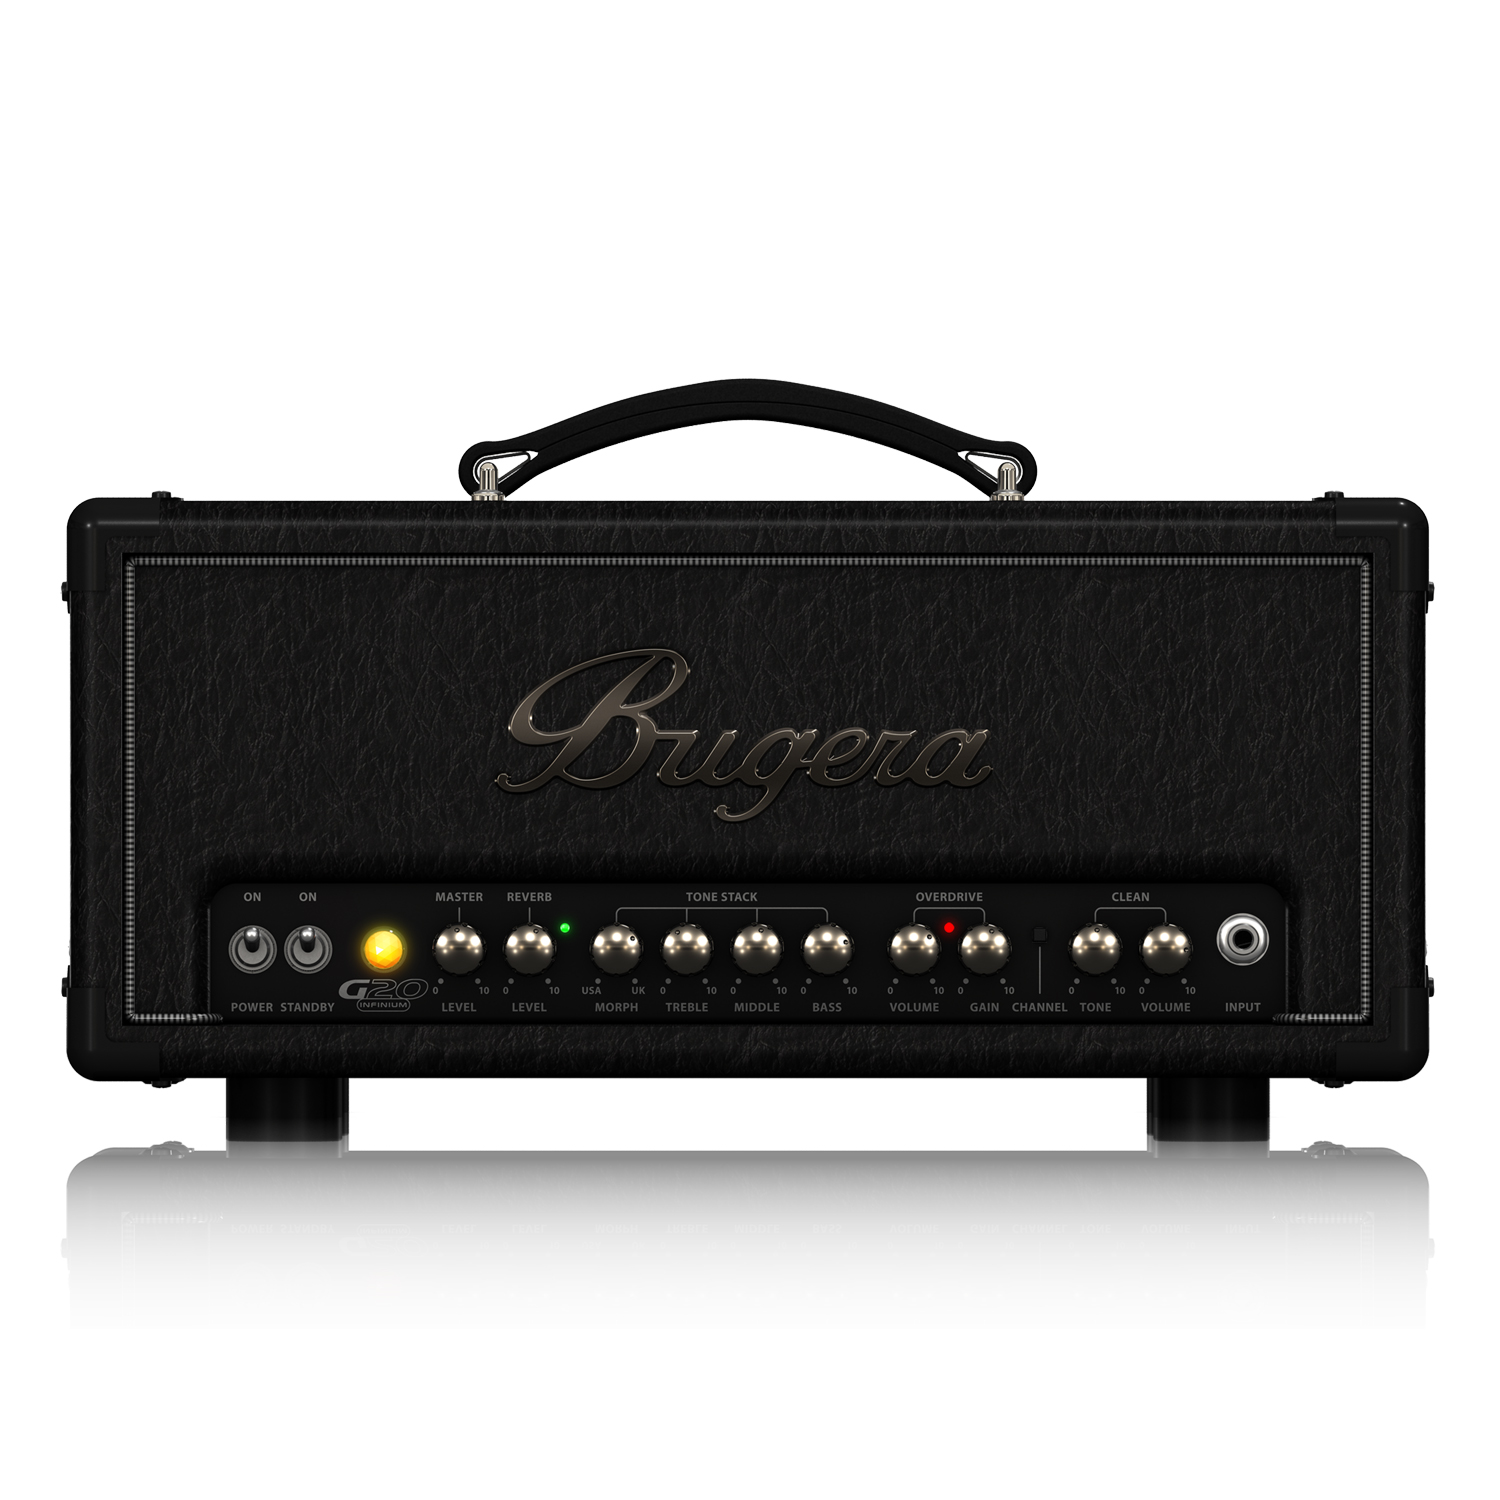 20-Watt Class-A Tube Amplifier Head with INFINIUM Tube Life Multiplier, MORPH EQ and Reverb